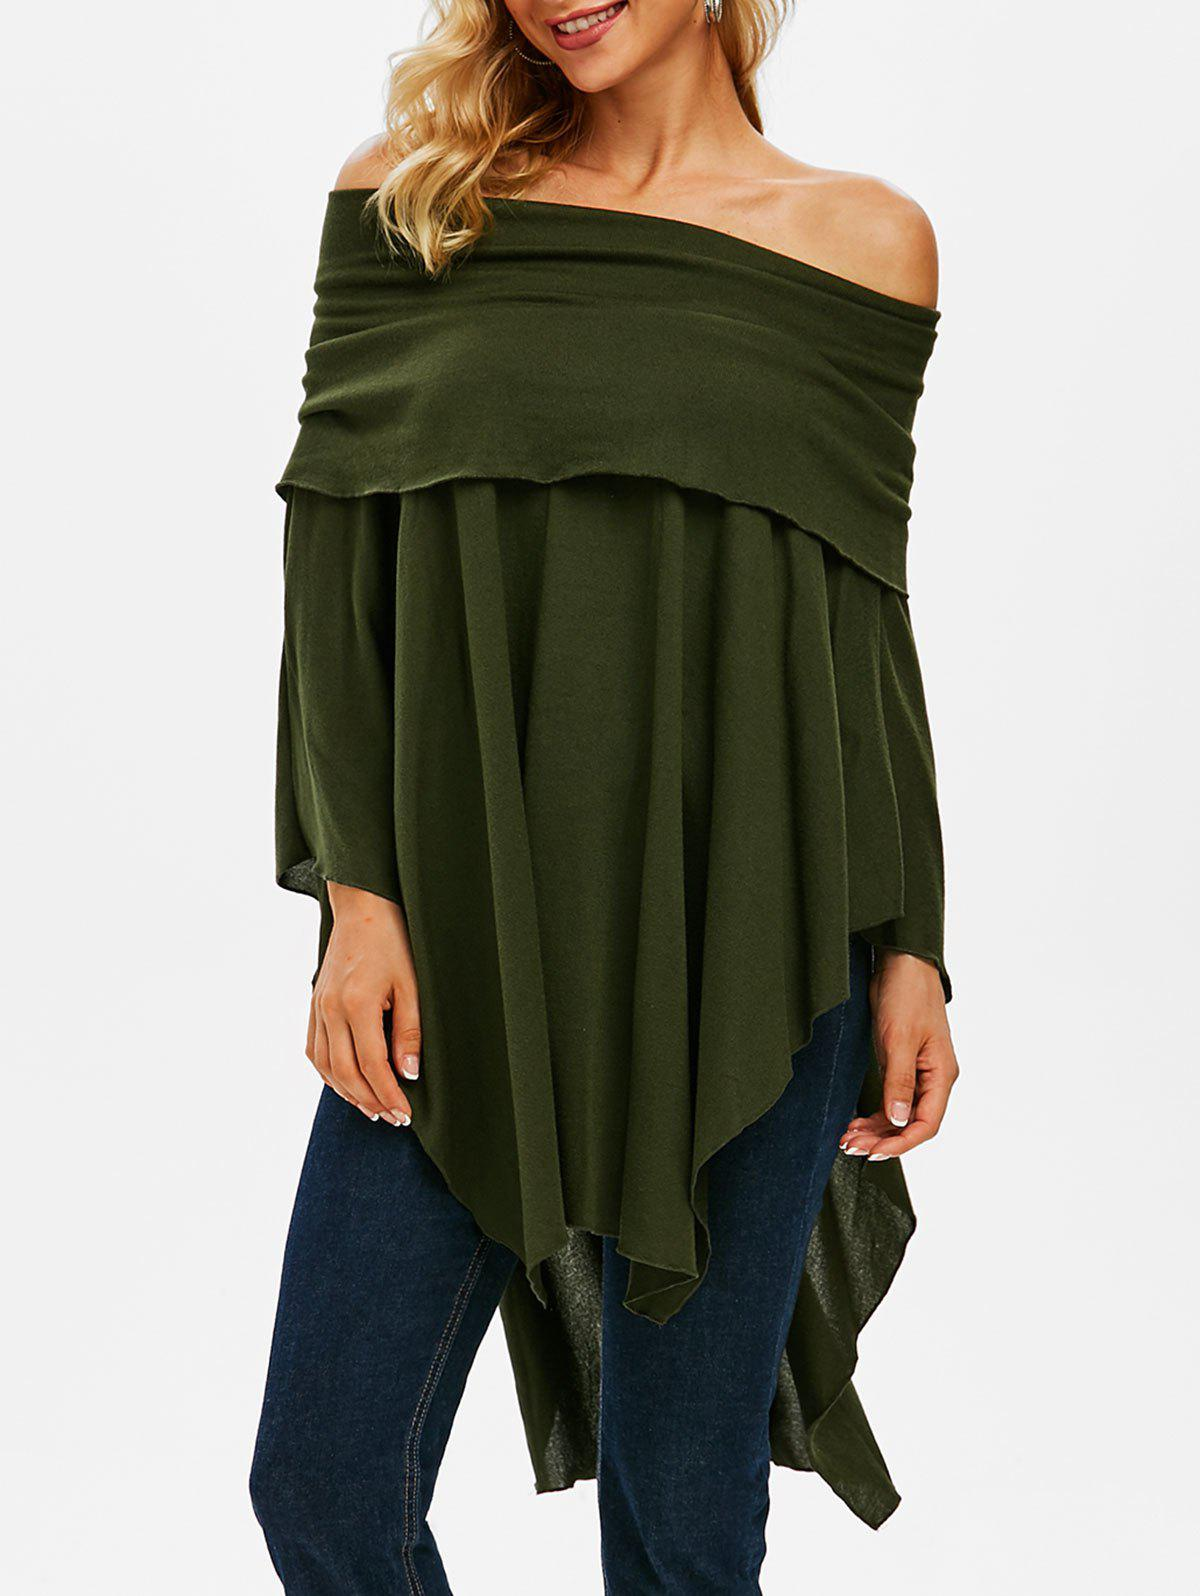 Foldover Off Shoulder Poncho Sweater - DEEP GREEN M